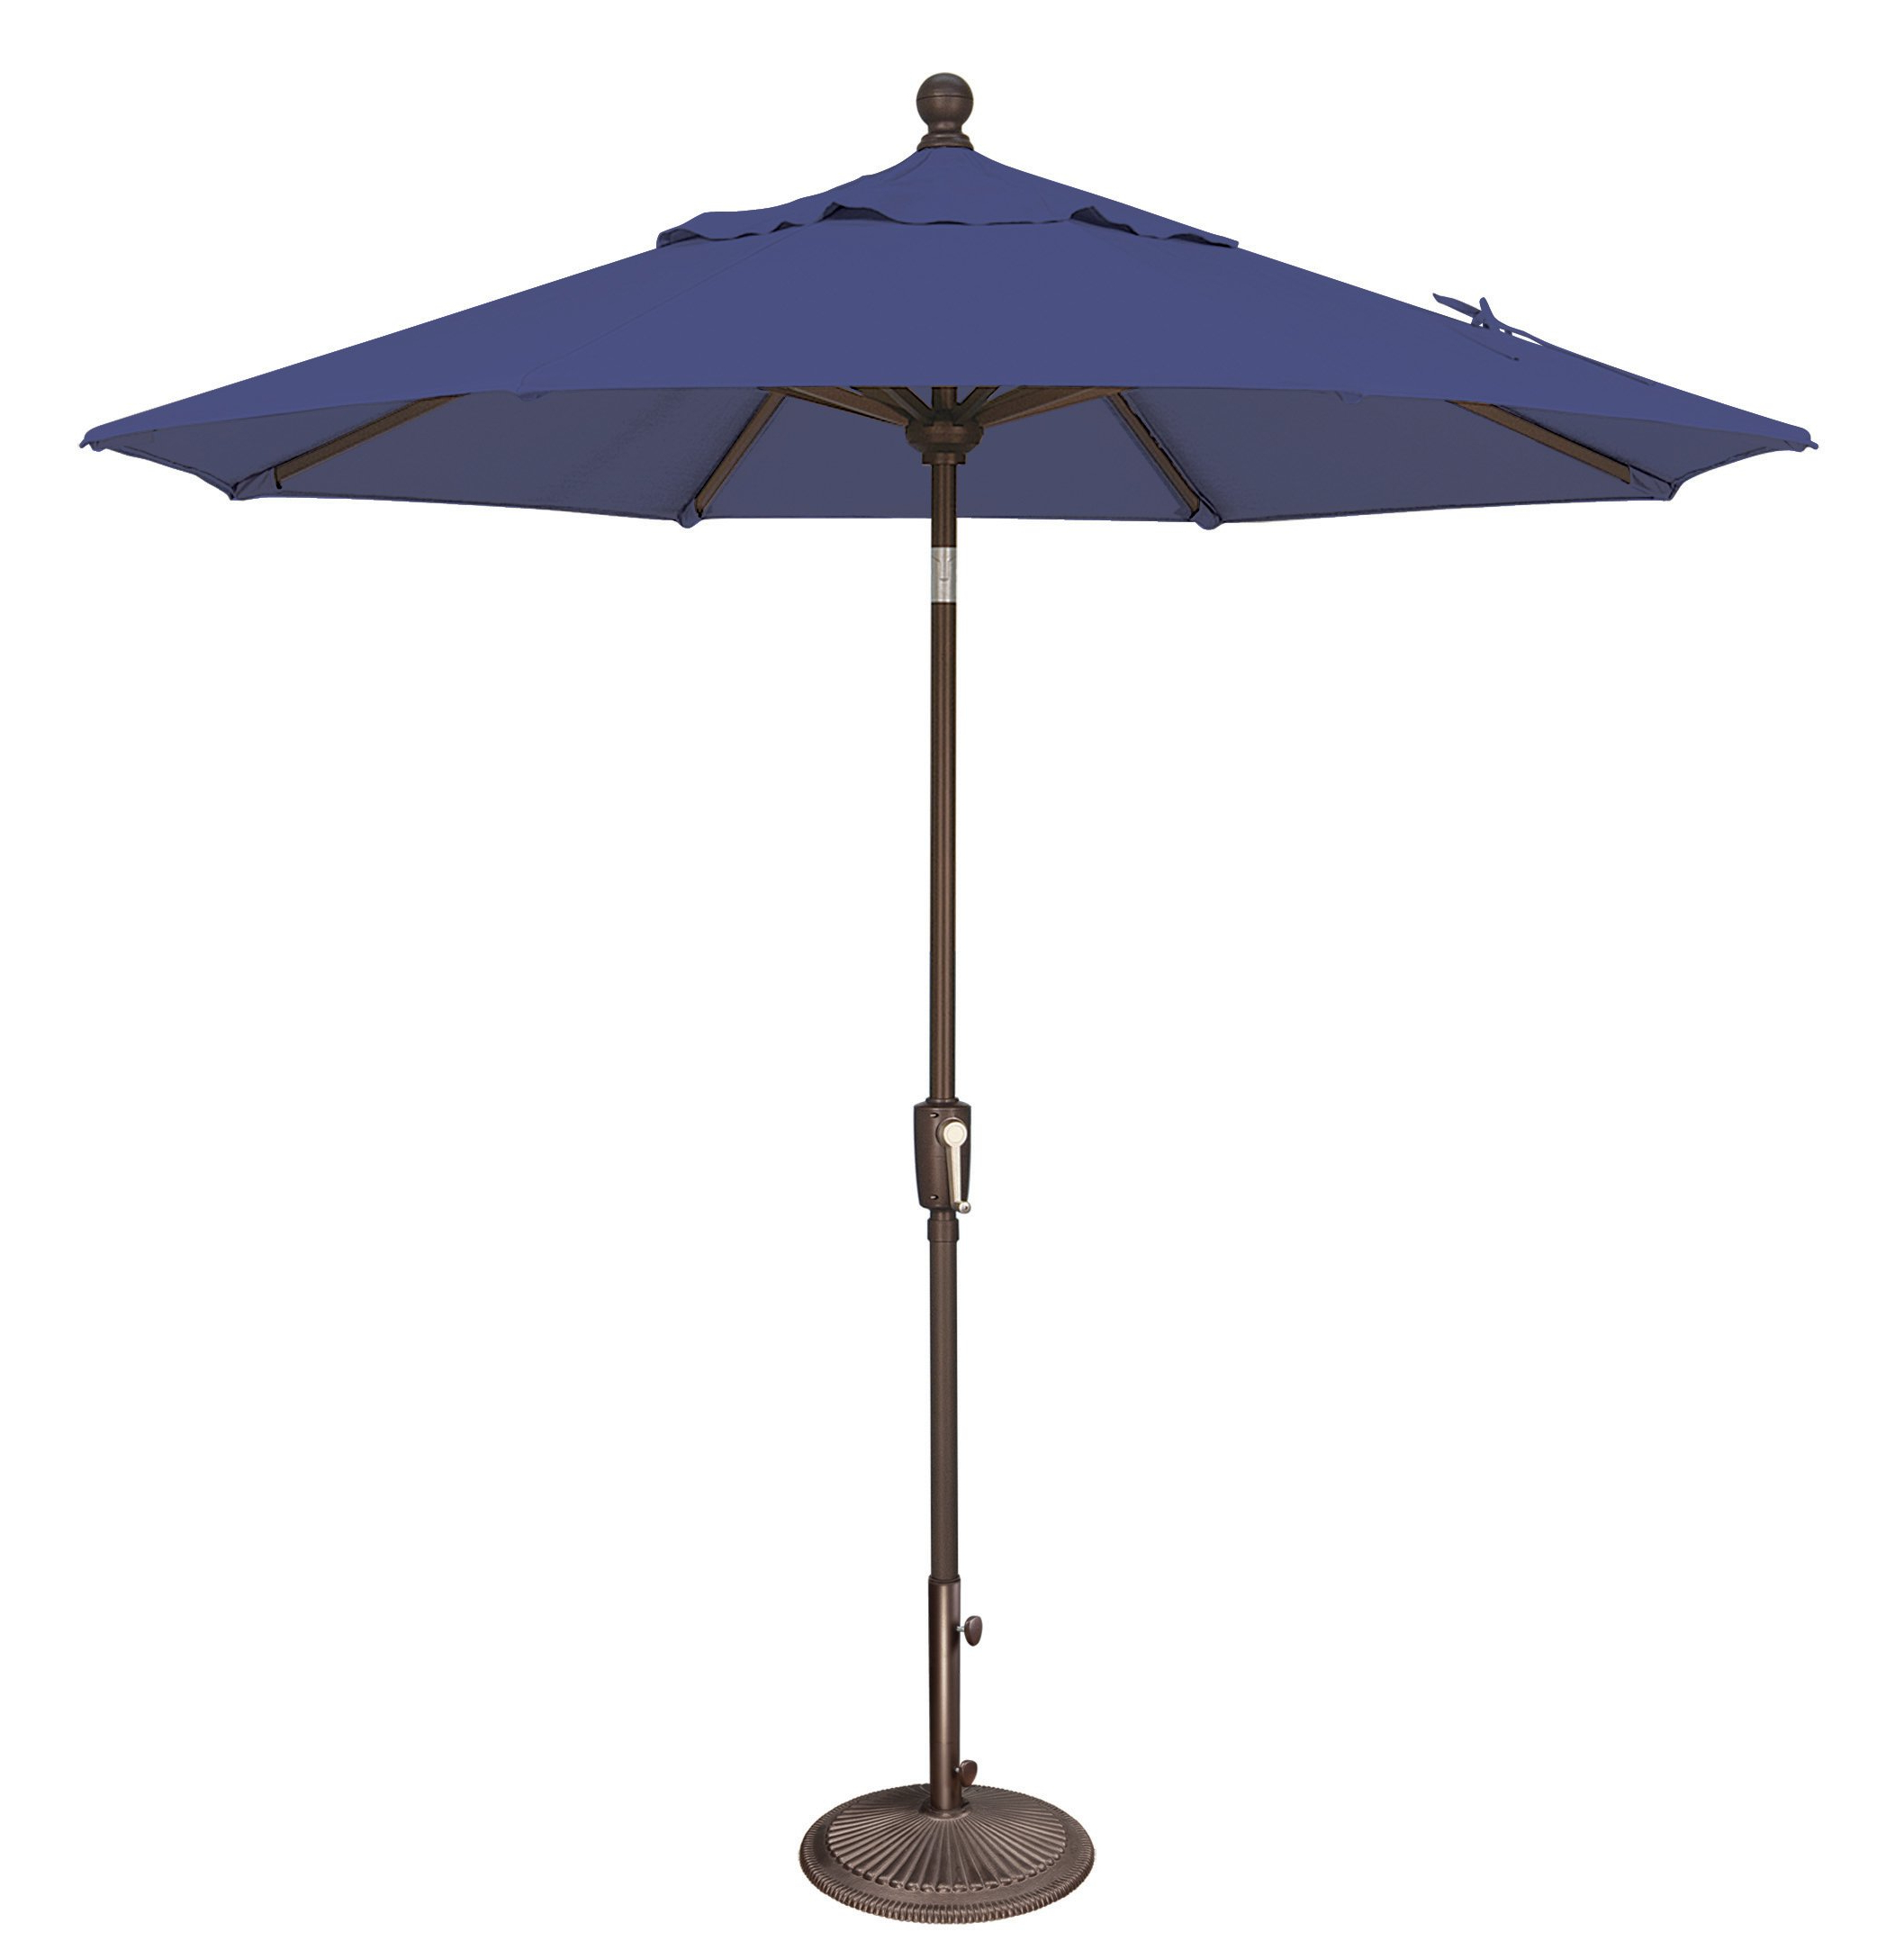 Launceston 7.5' Market Umbrella For Well Liked Launceston Market Umbrellas (Gallery 1 of 20)